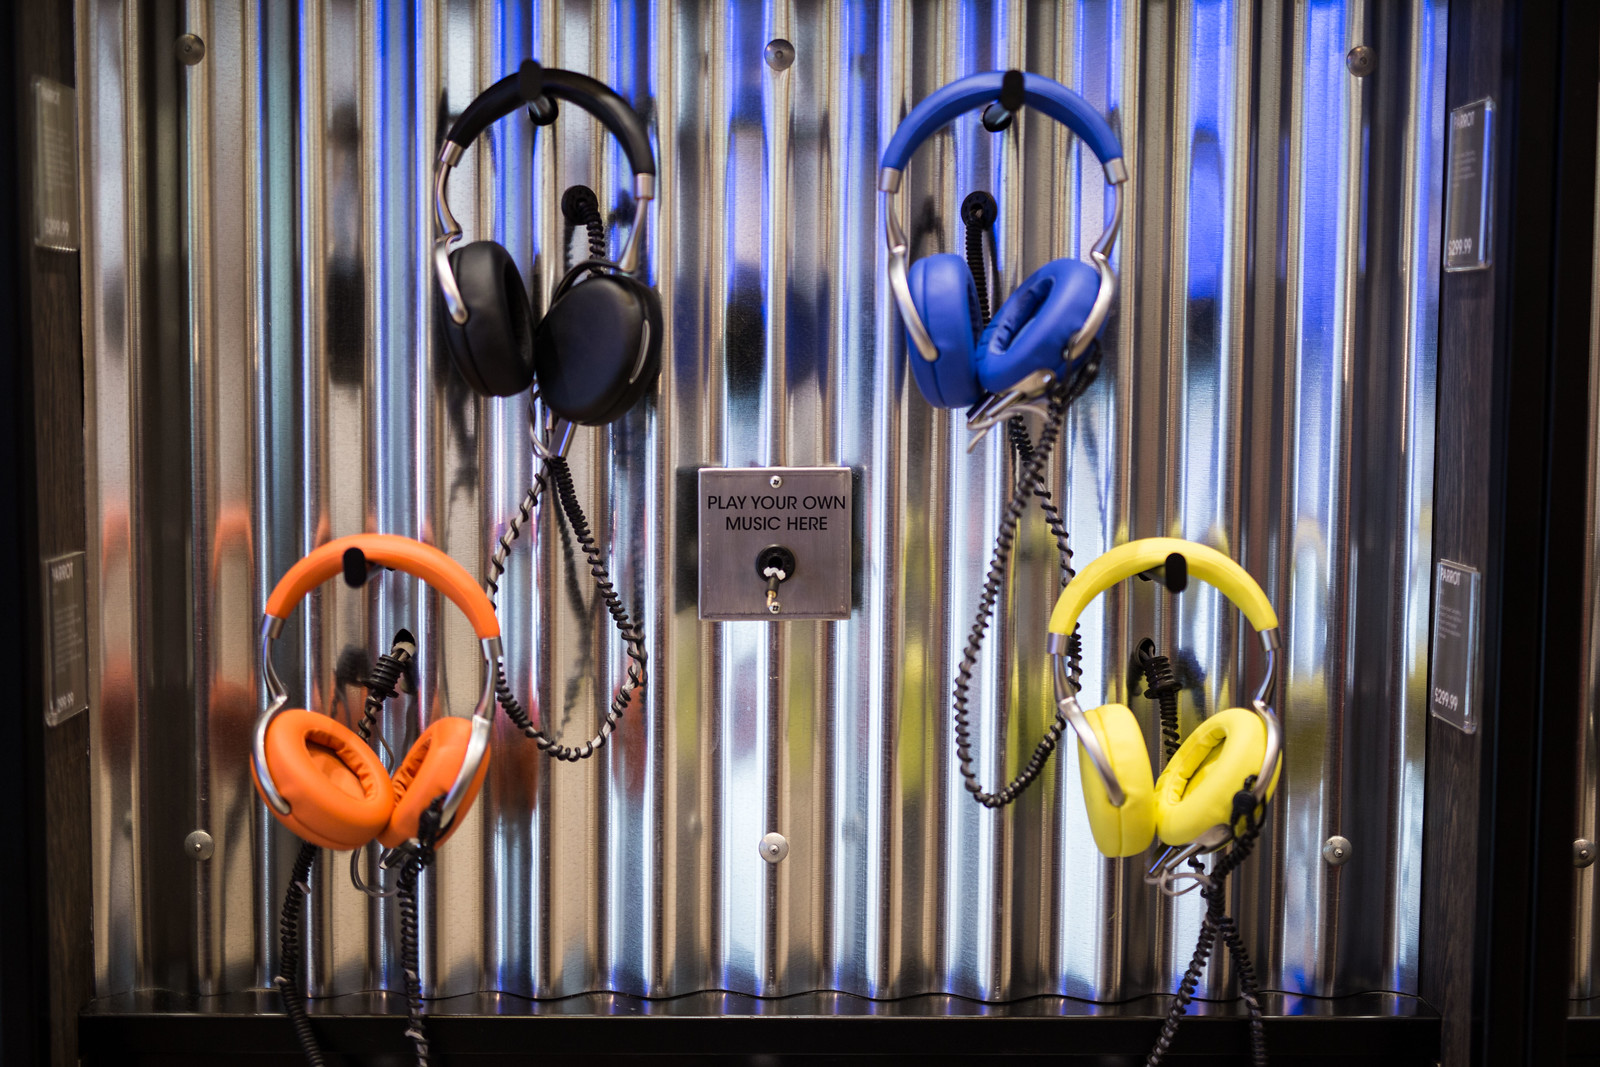 Selfridges headphones launch